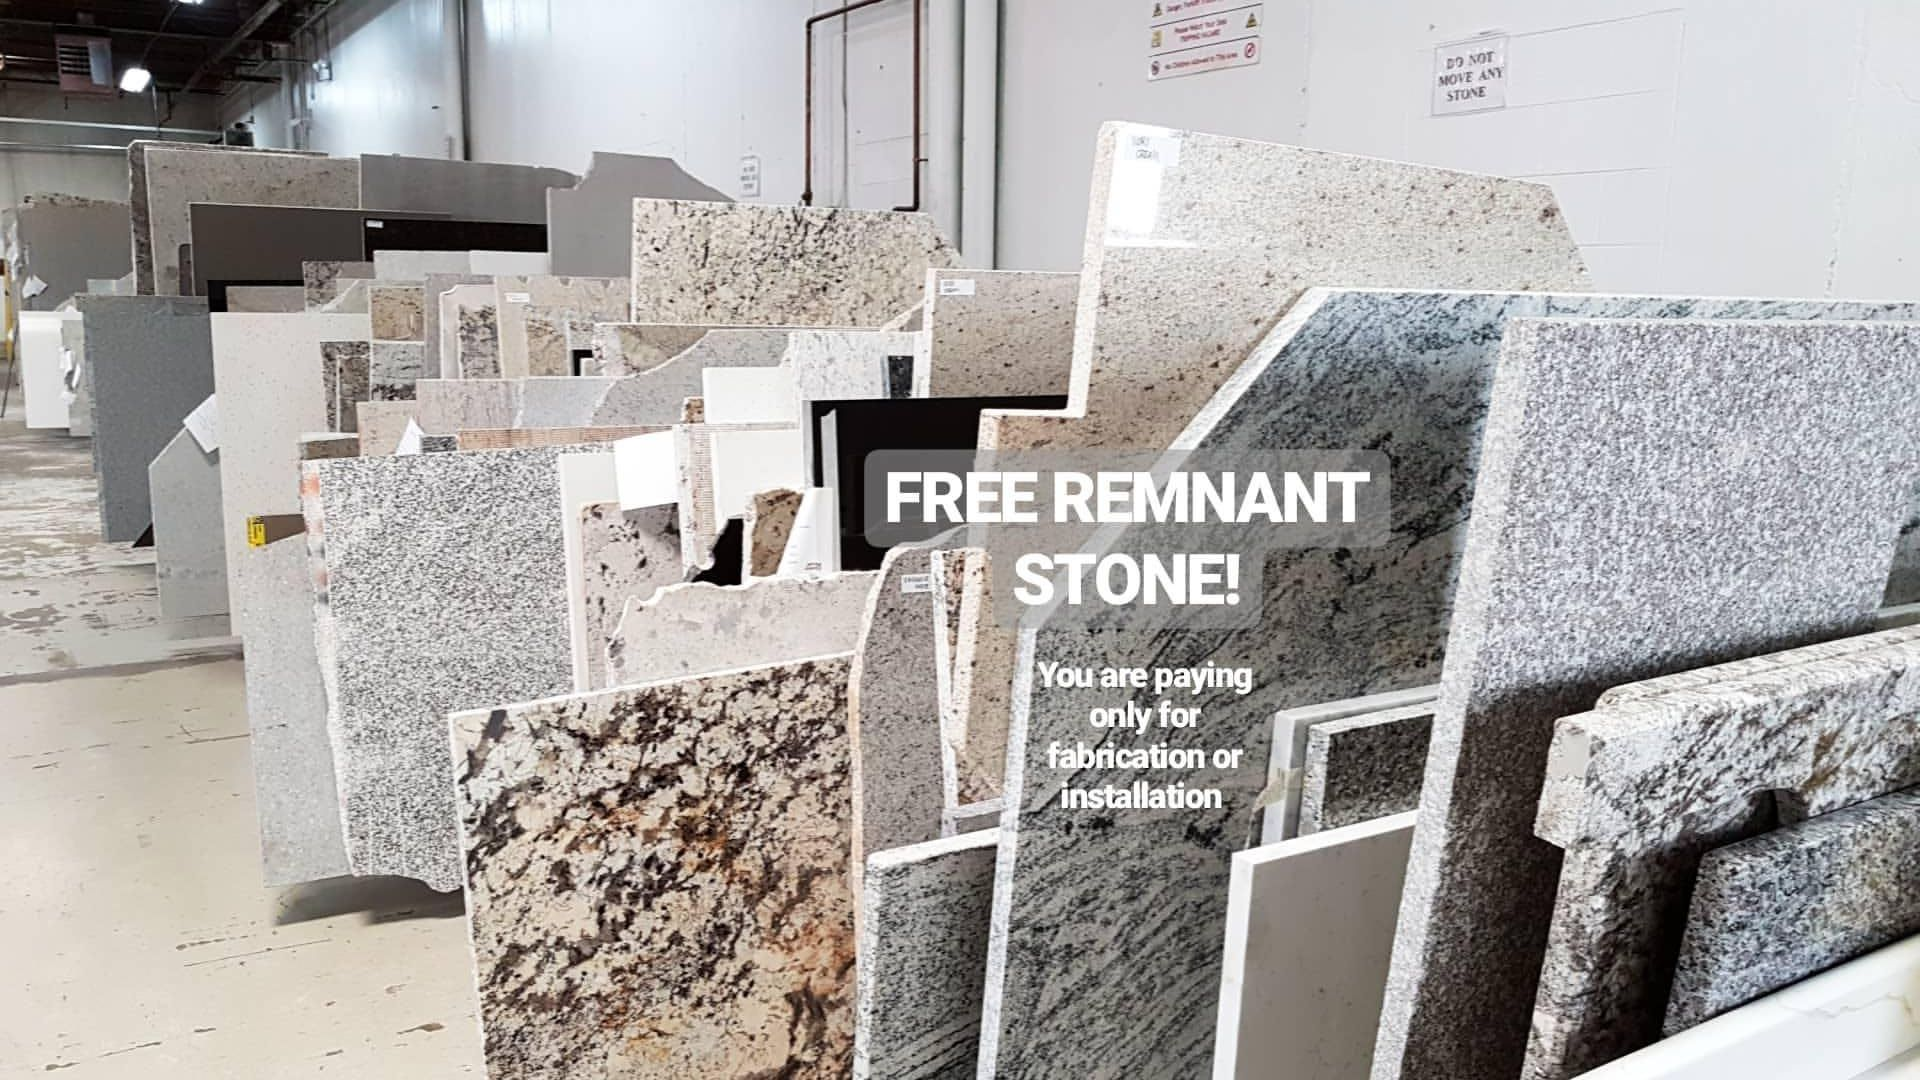 Free Remnant Stone Remnants Are Large Enough To Be Used For Smaller Projects Such As Bathroom Vanitie Granite Quartz Countertops Marble Quartz Marble Granite